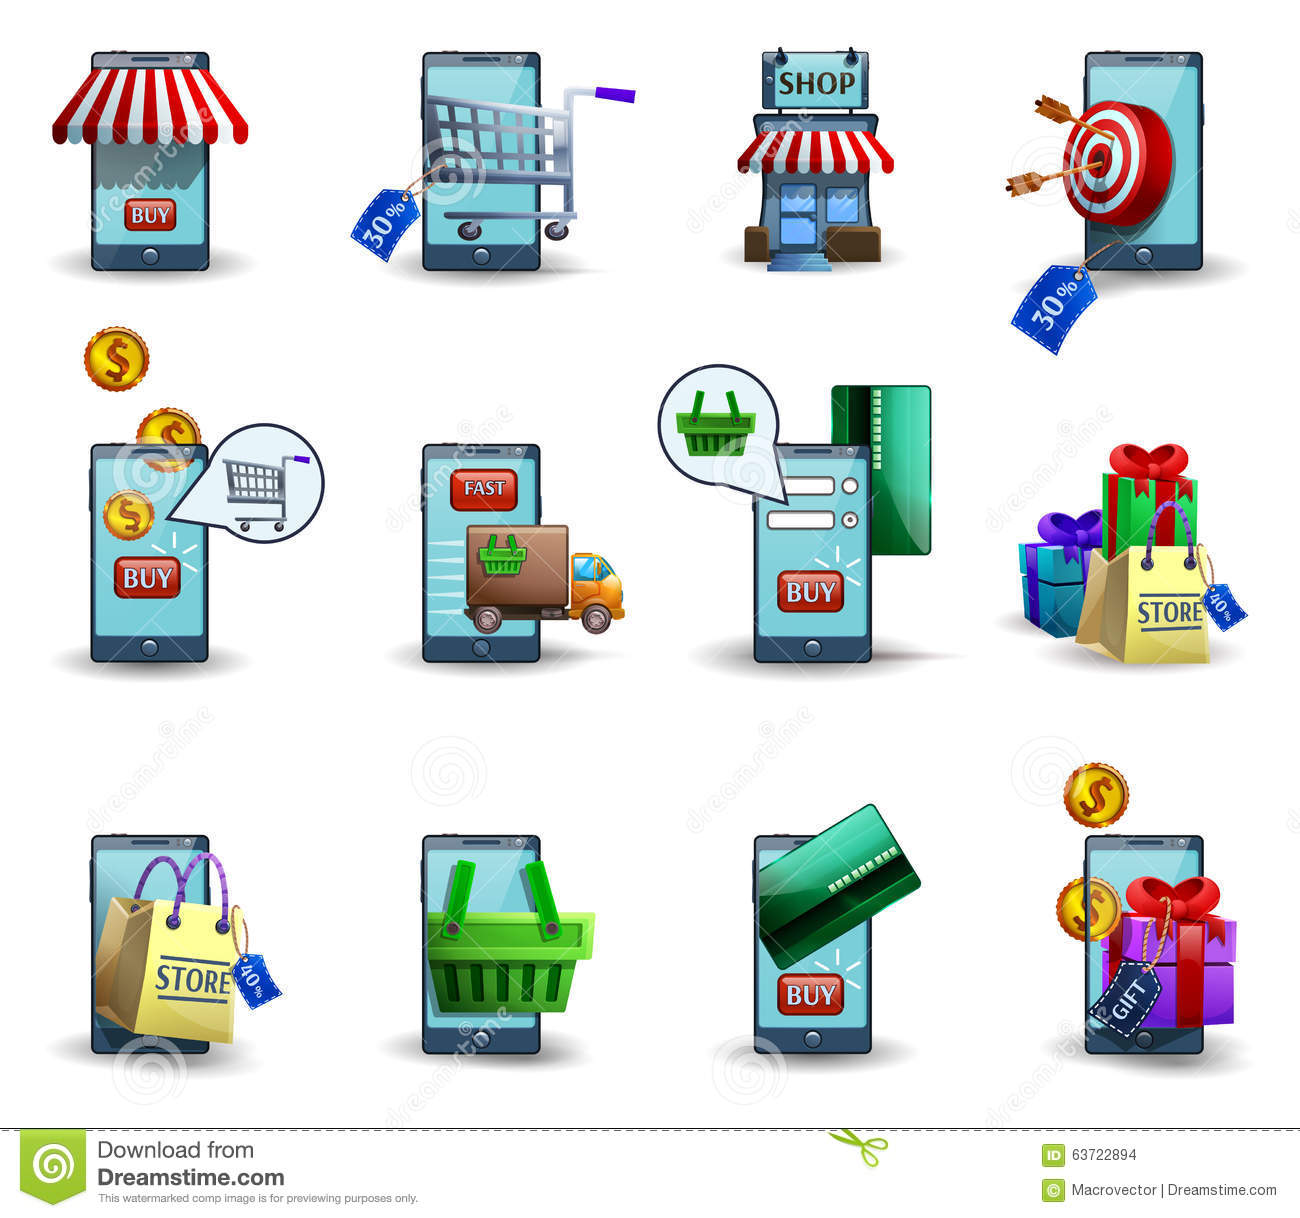 mobile commerce Mobile commerce 36 likes delivery of electronic commerce capabilities directly into the consumer's hand, anywhere, via wireless technology.